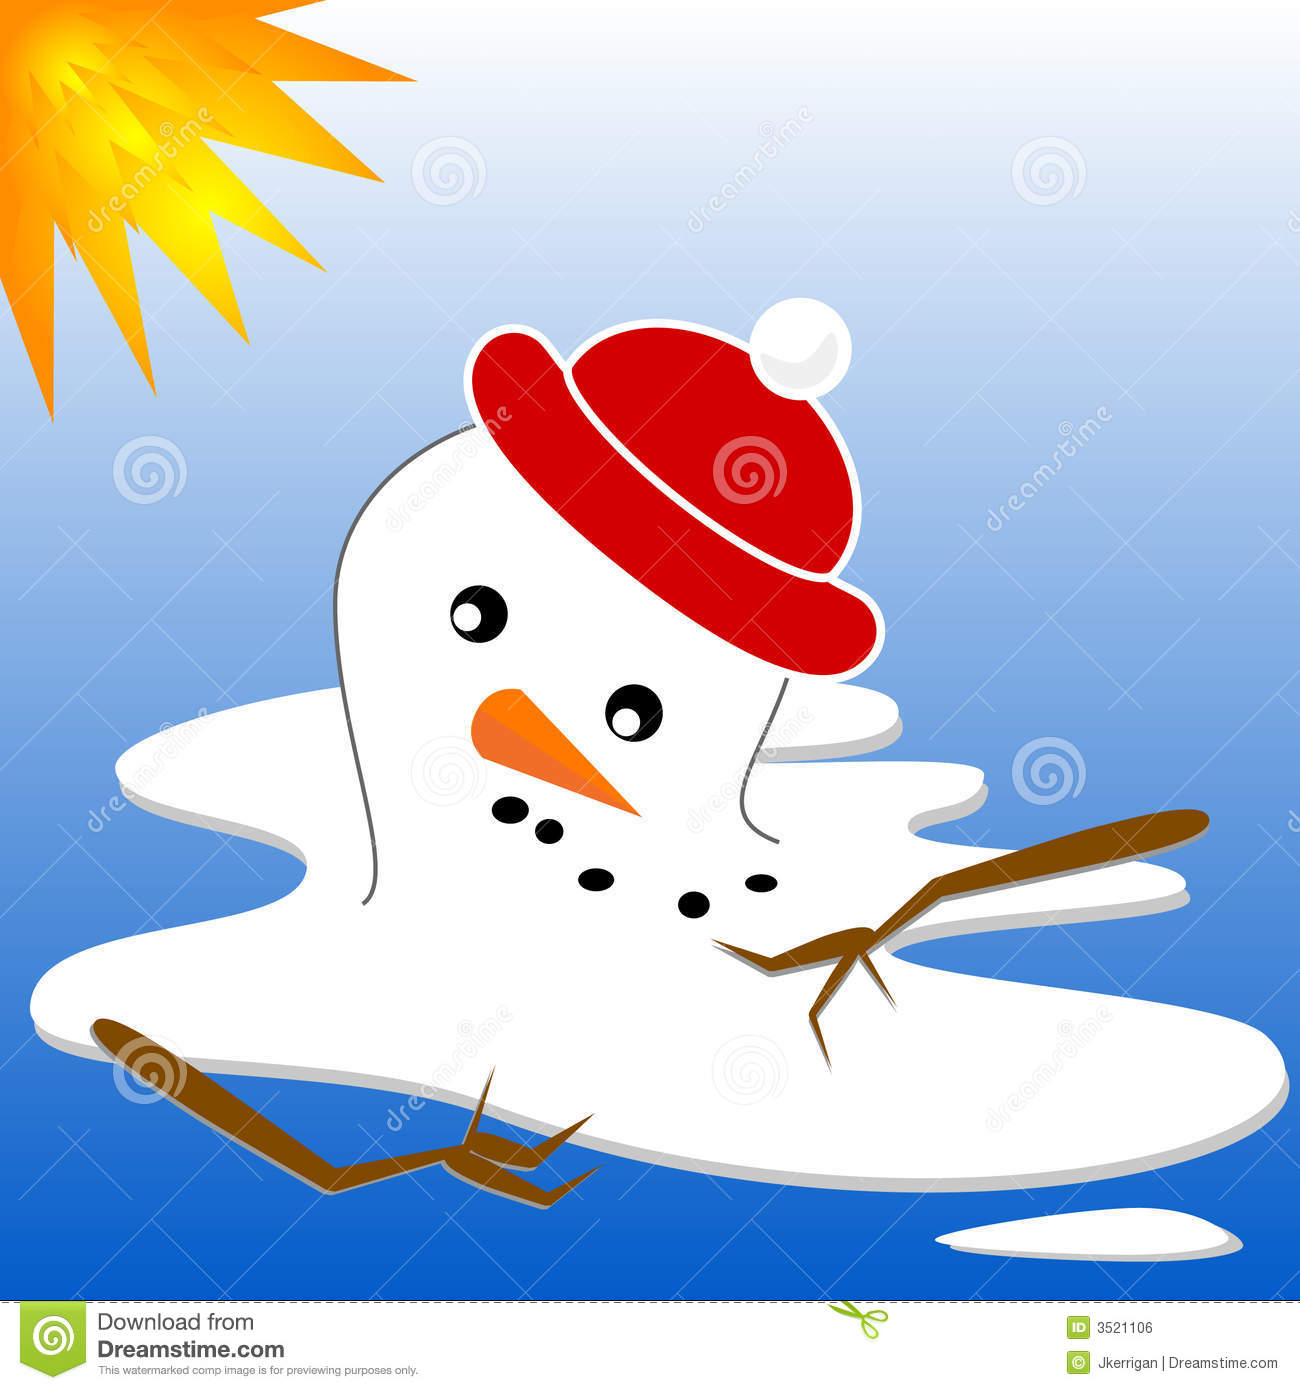 Snowman Melt Royalty Free Stock Image - Image: 3521106